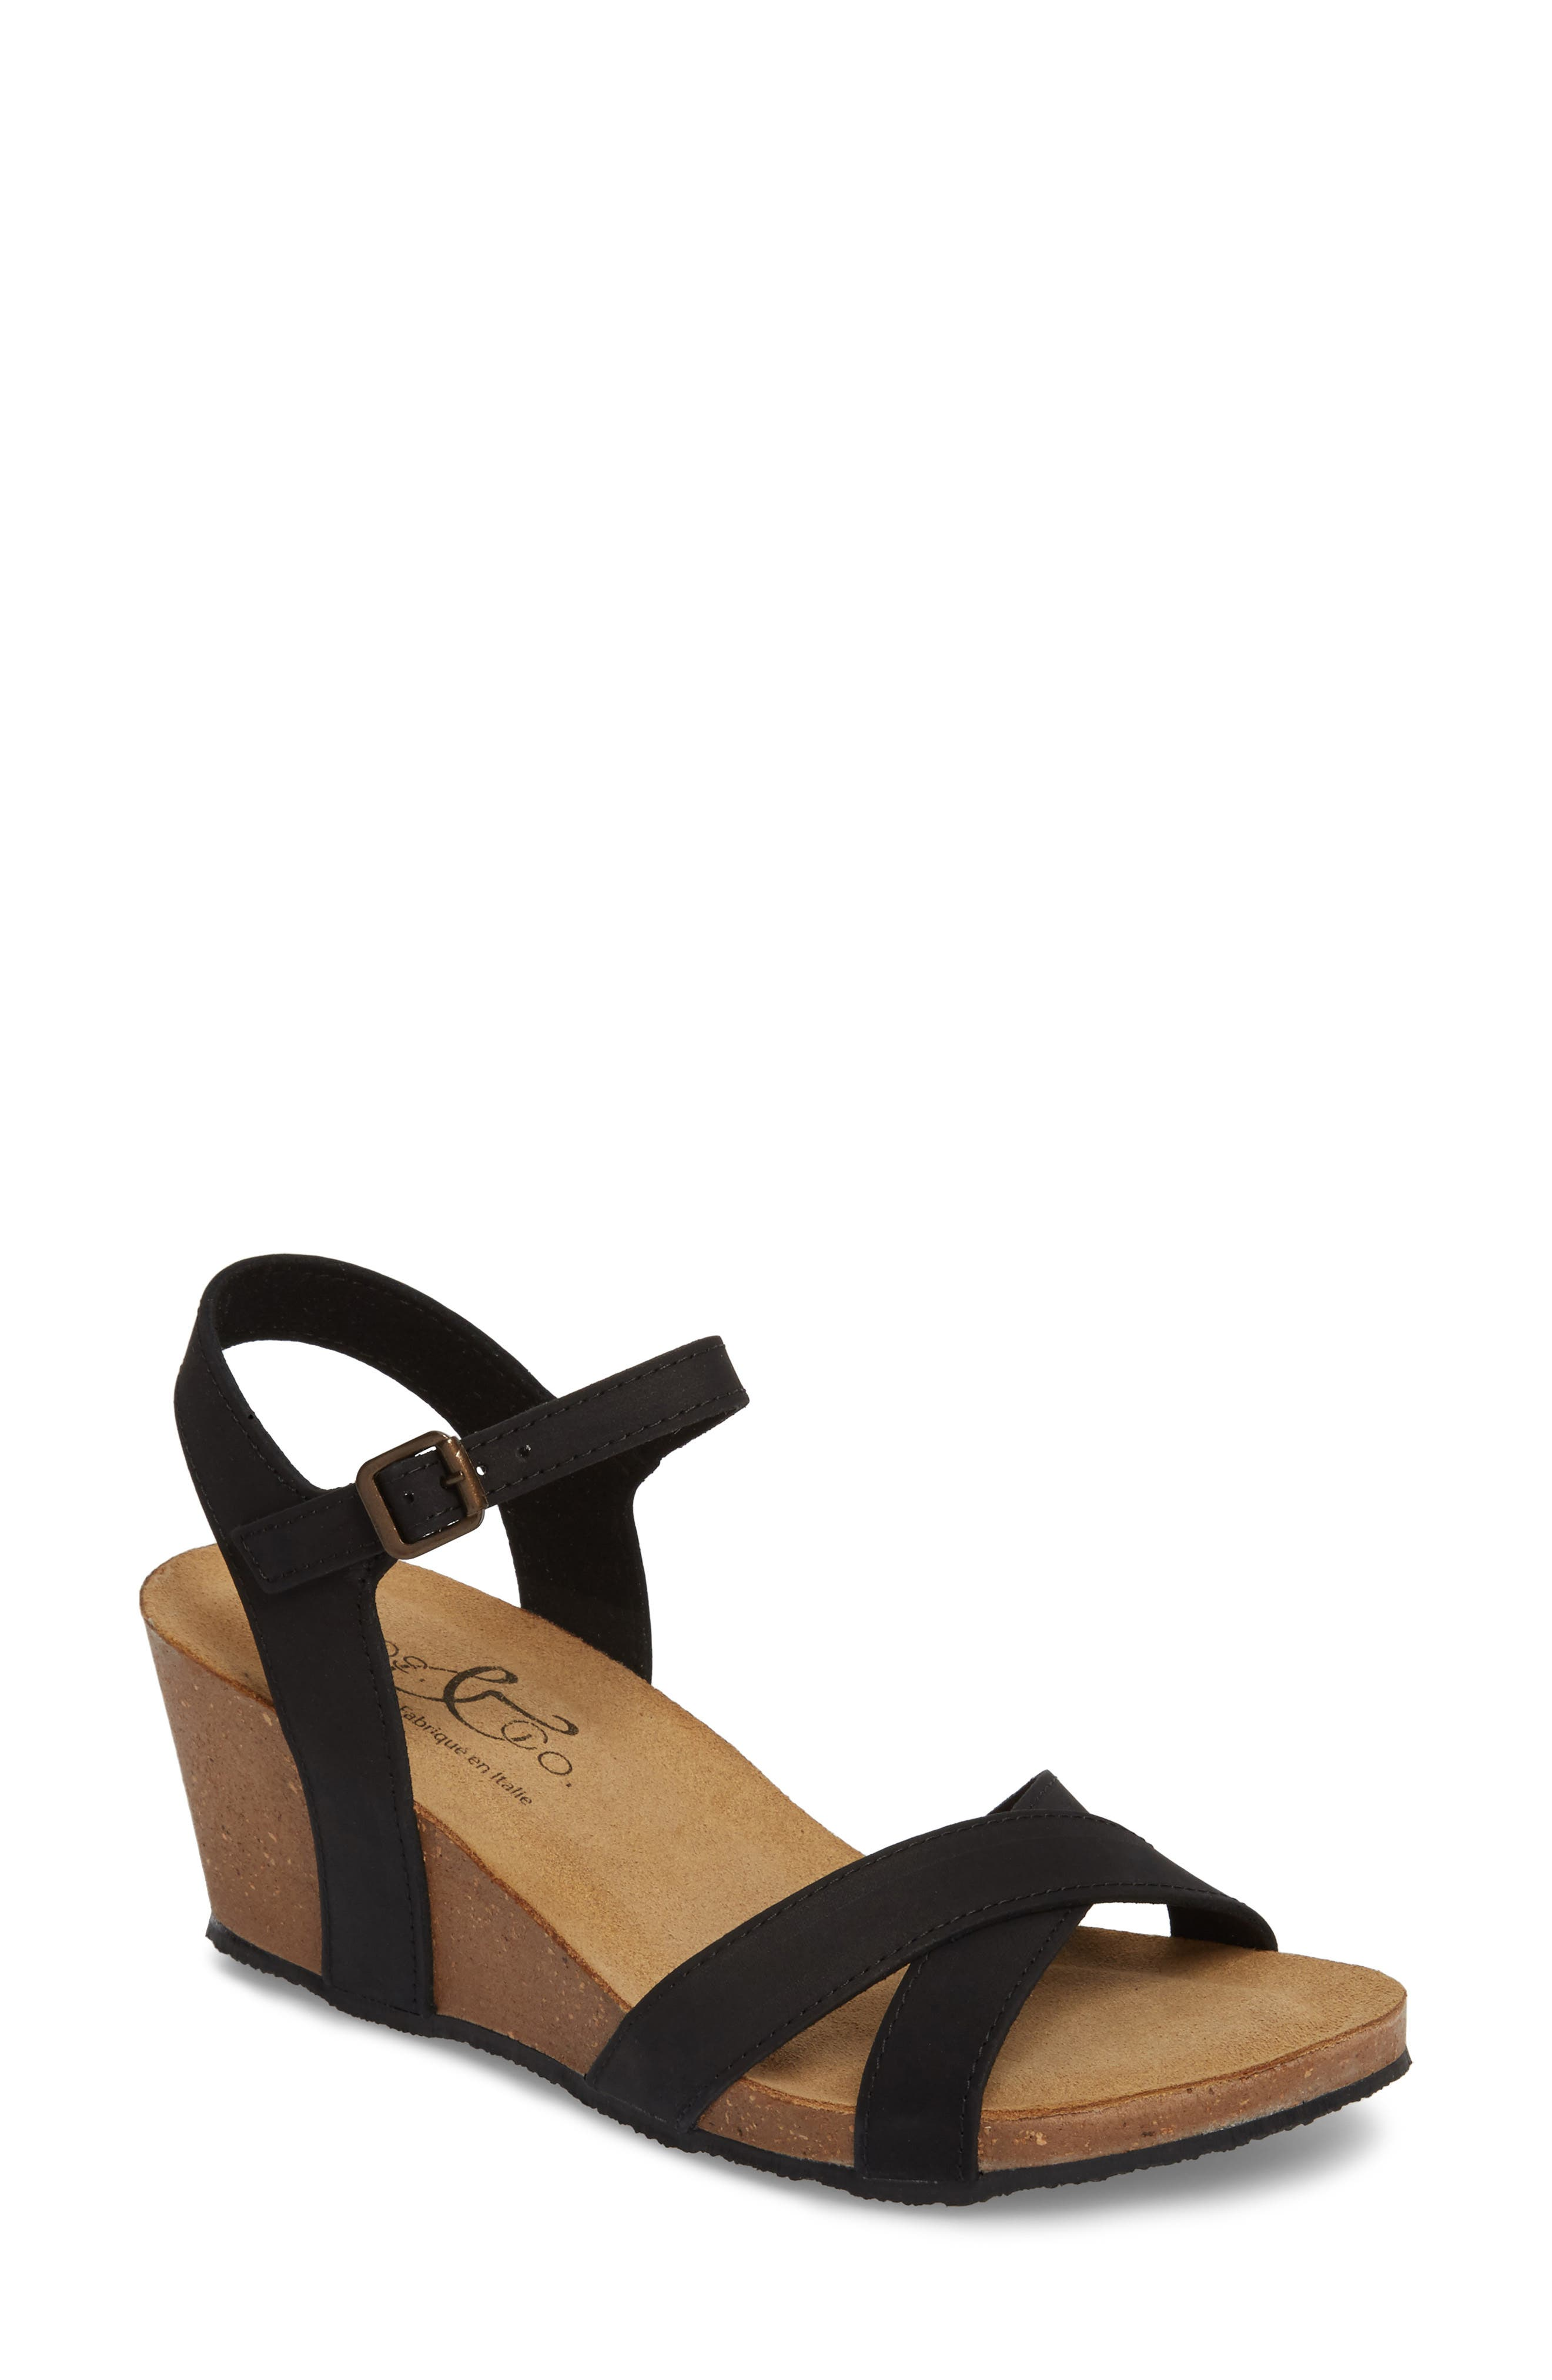 Bos. & Co. Lucca Wedge Sandal, Black